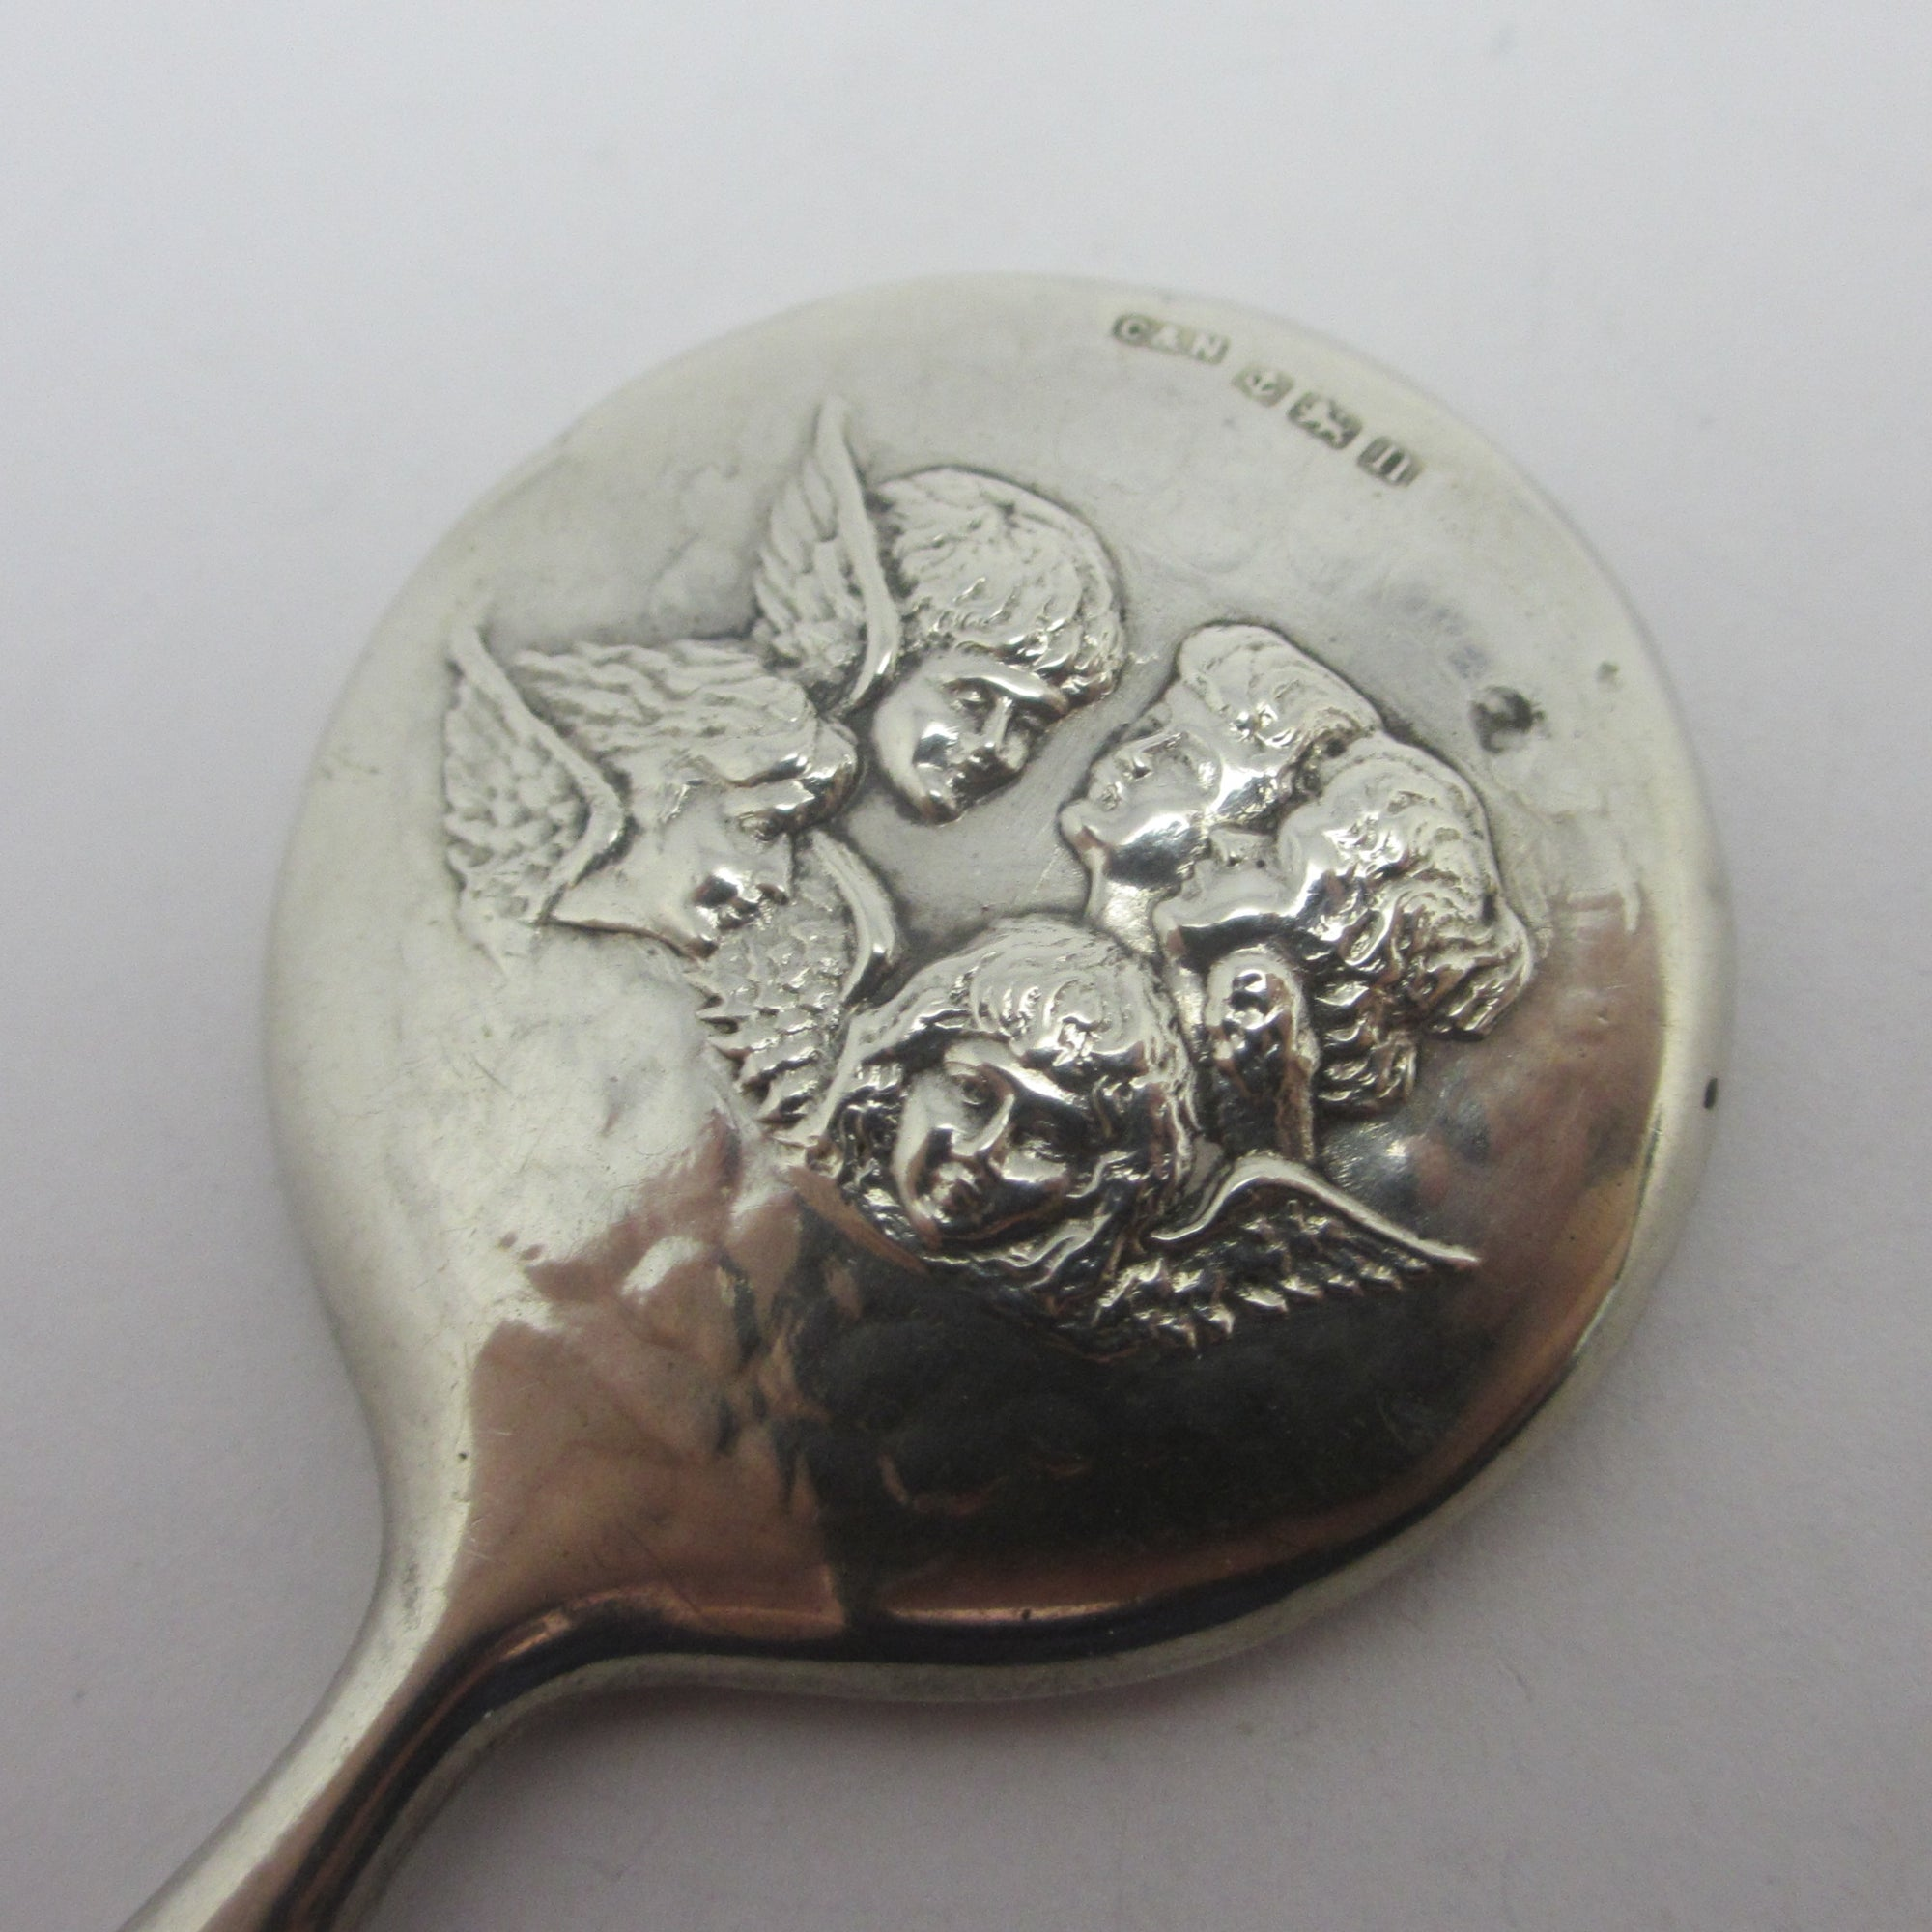 Cherub Miniature Doll Hand Mirror Sterling Silver Antique Edwardian by Crisfords Norris